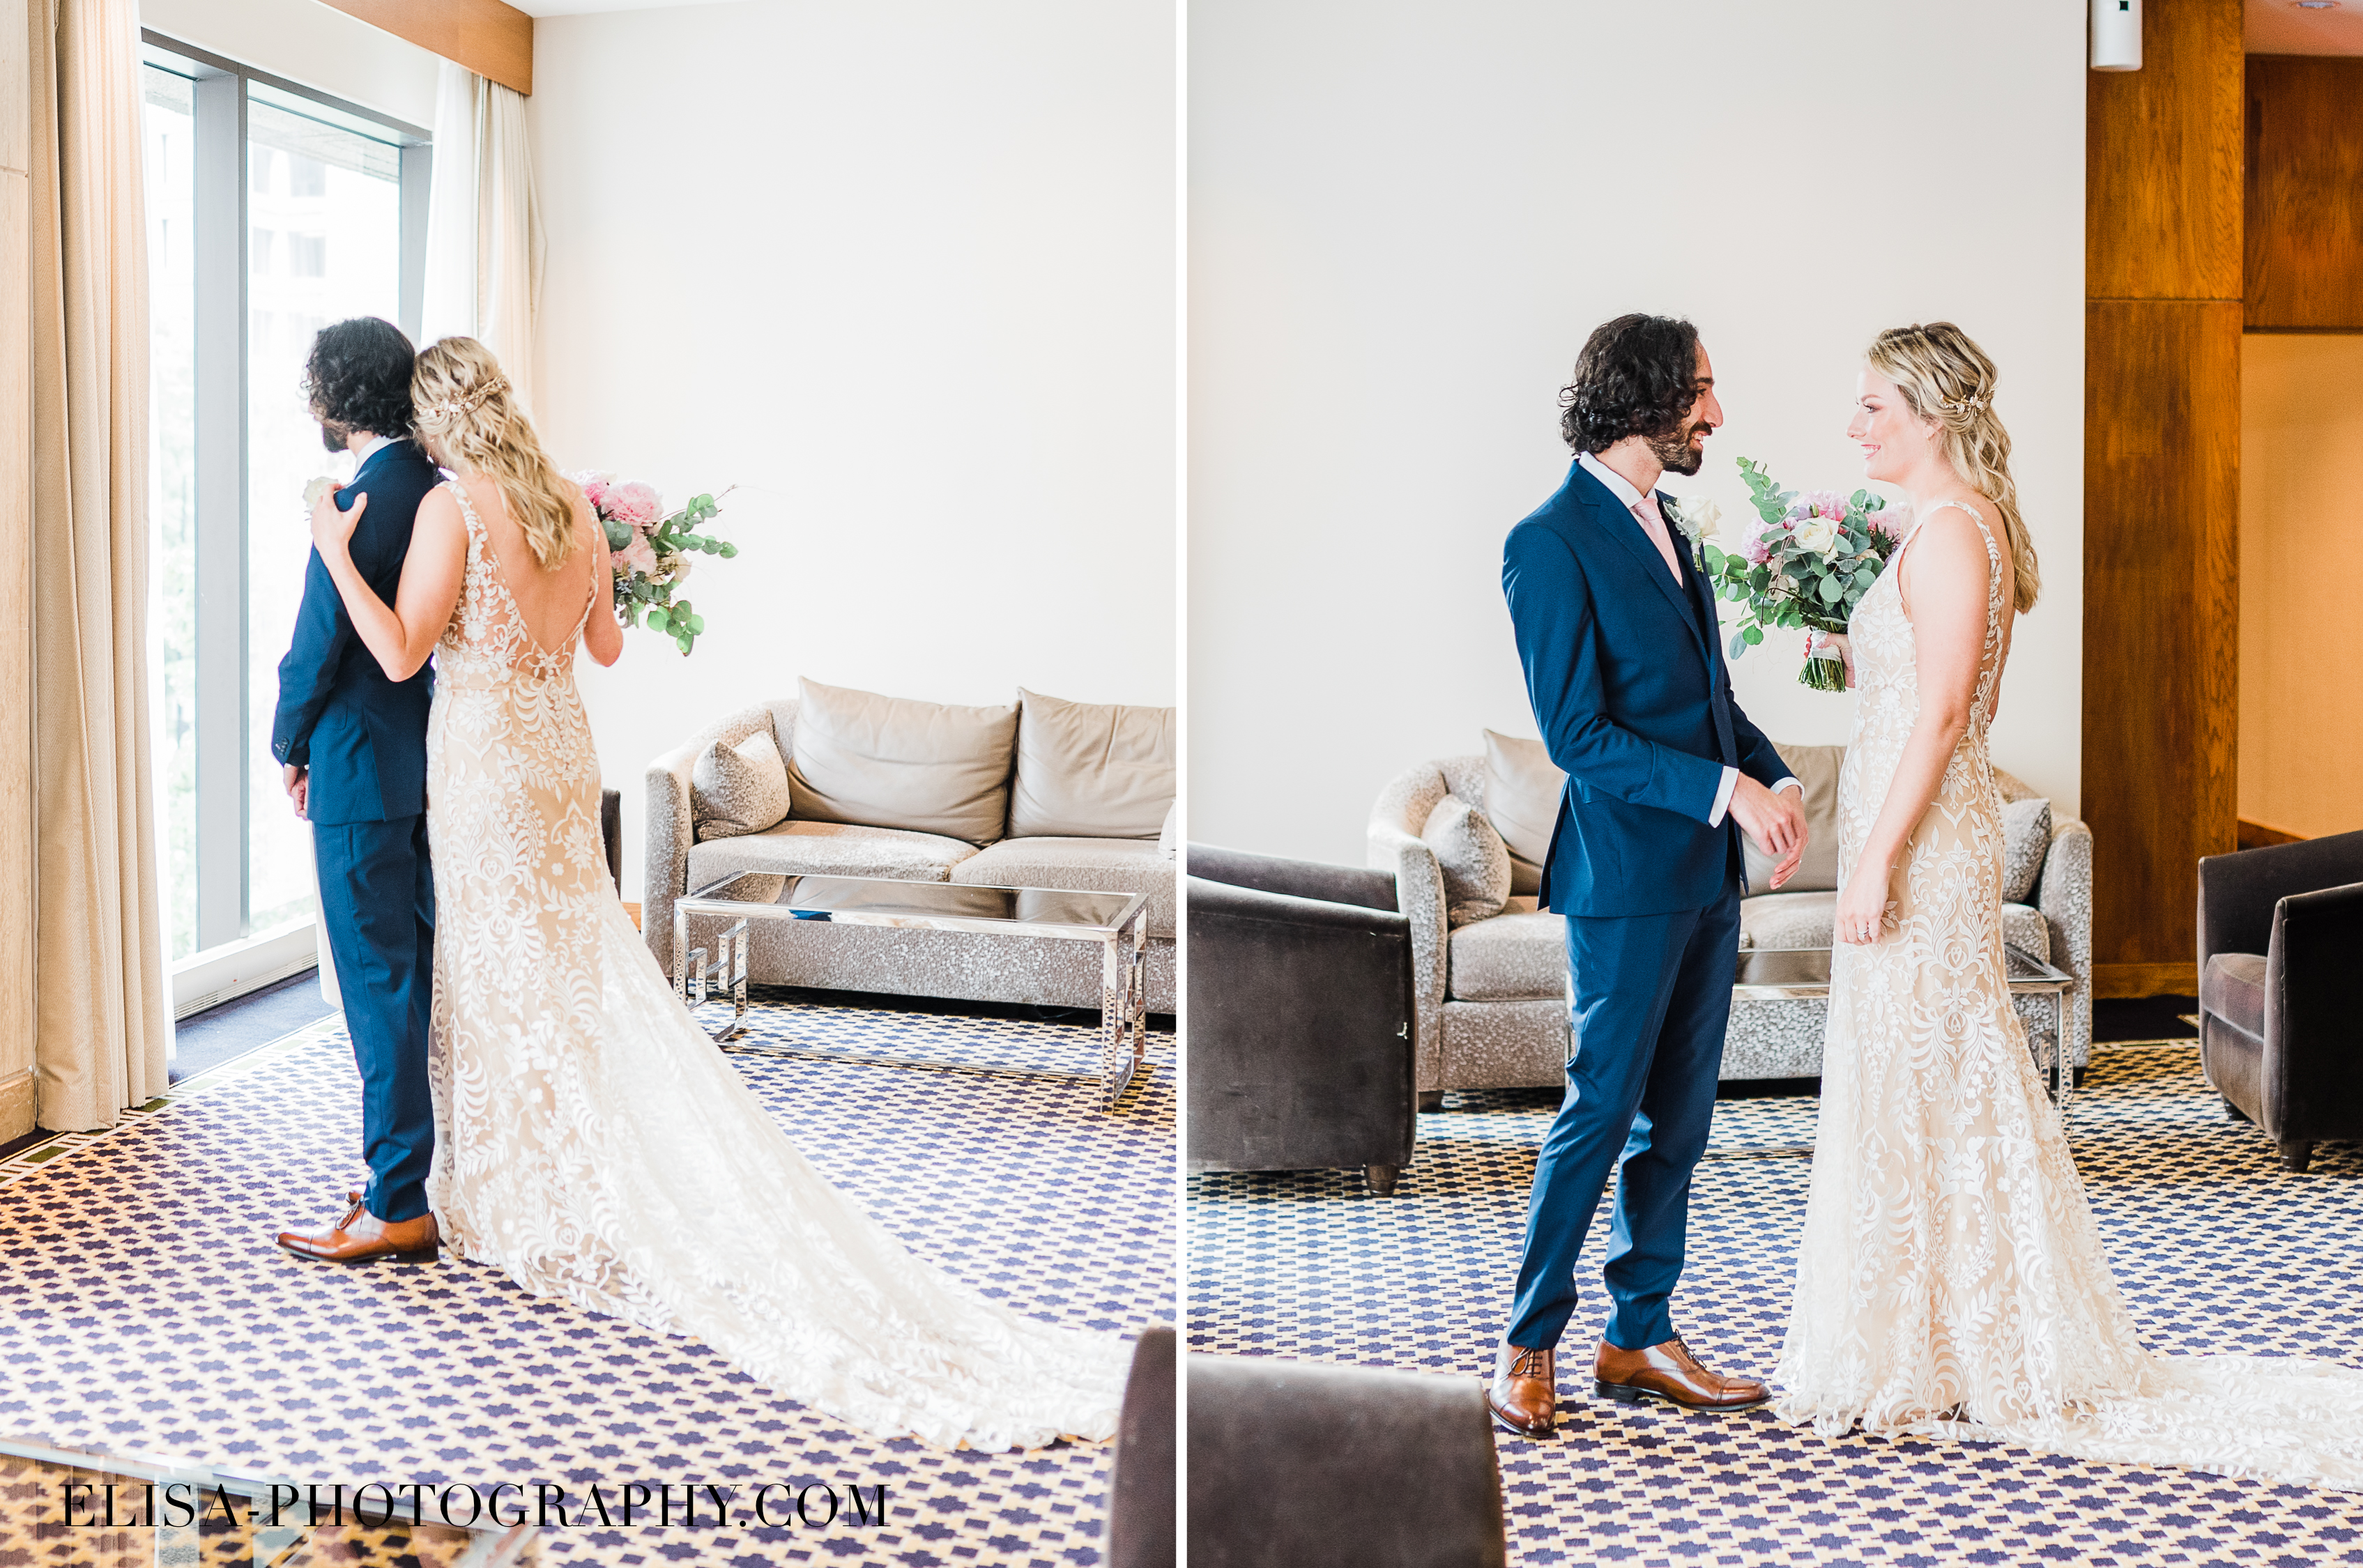 PHOTO mariage hotel omni montreal first look elisa photographe - An elegant wedding under the marquee at the Forest and Stream Club in Montreal